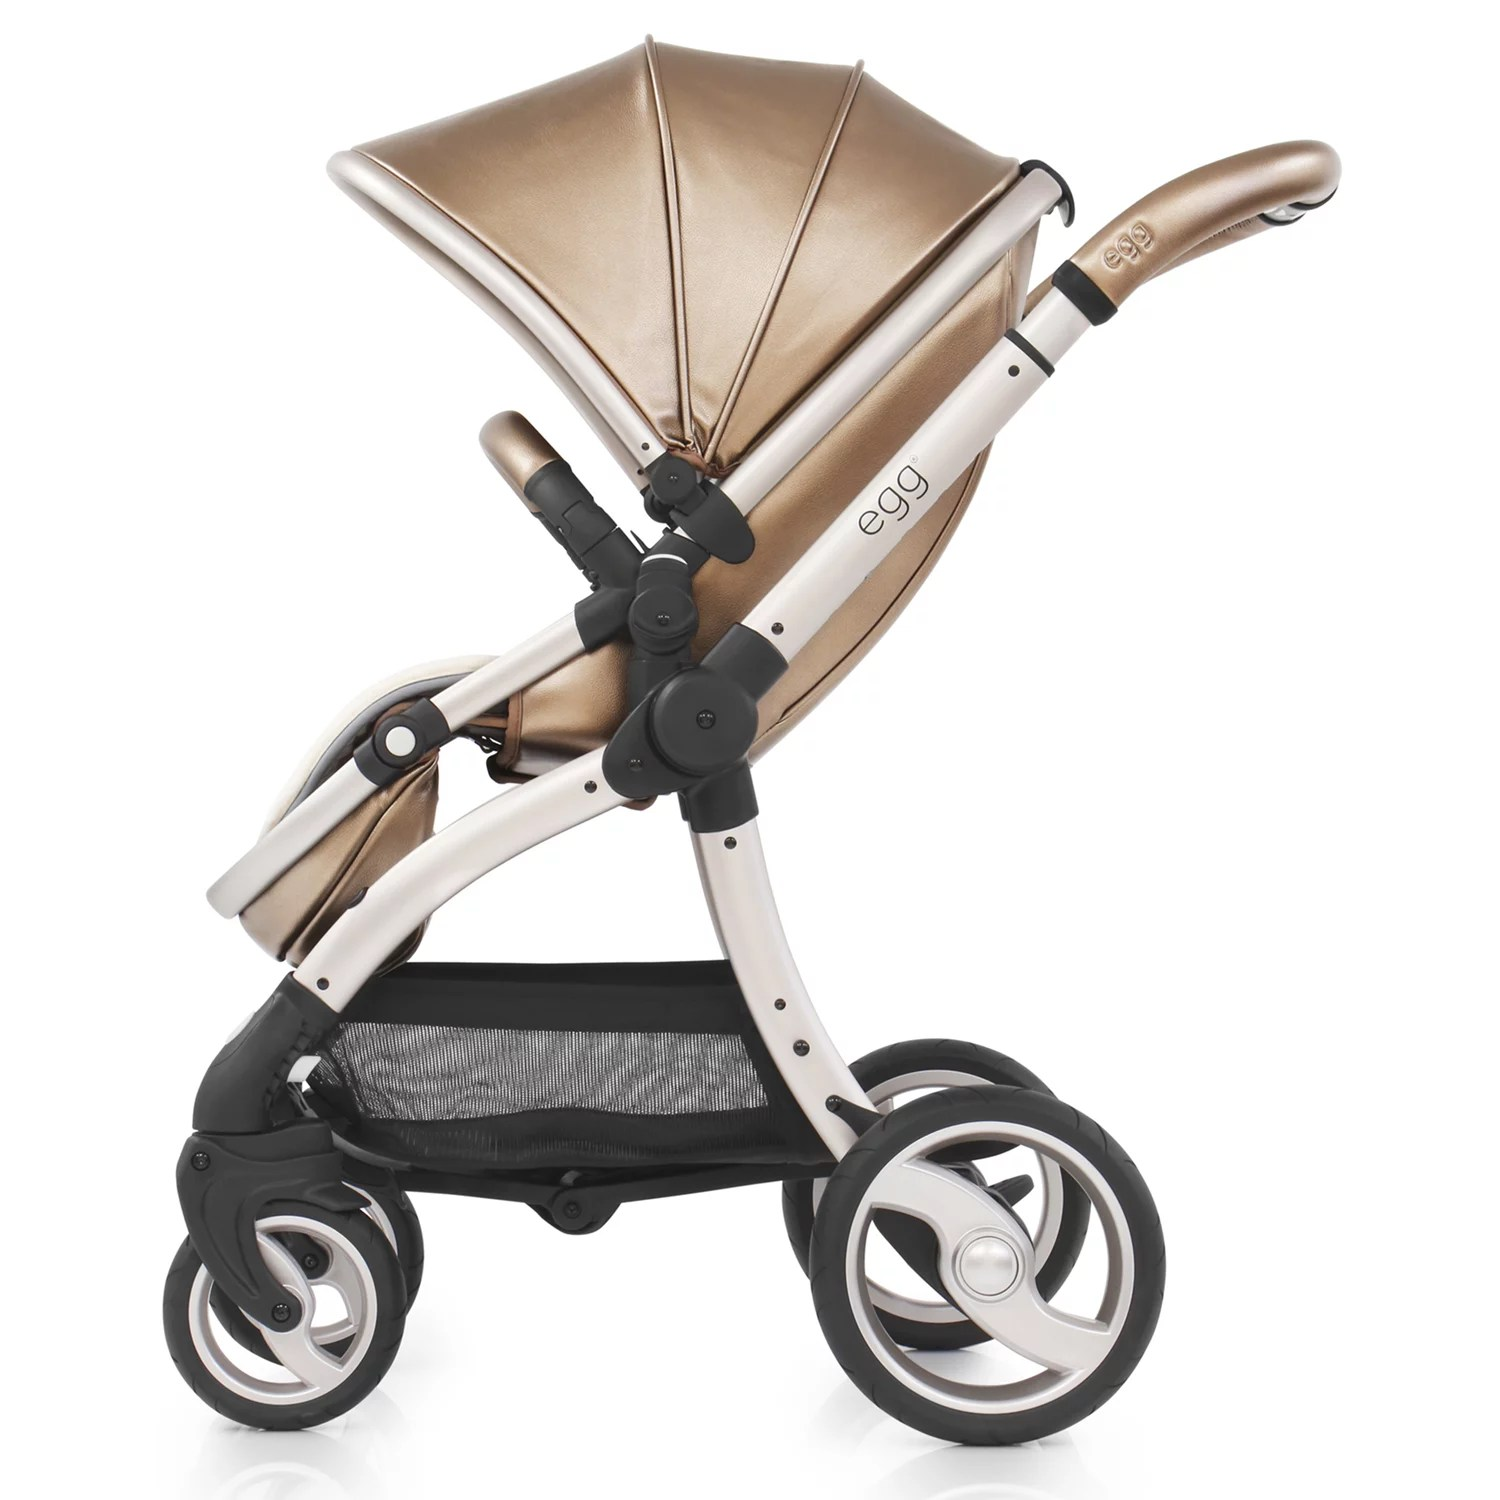 Egg Stroller For Twins Egg Special Edition Stroller Base And Seat With Fleece Liner Hollywood